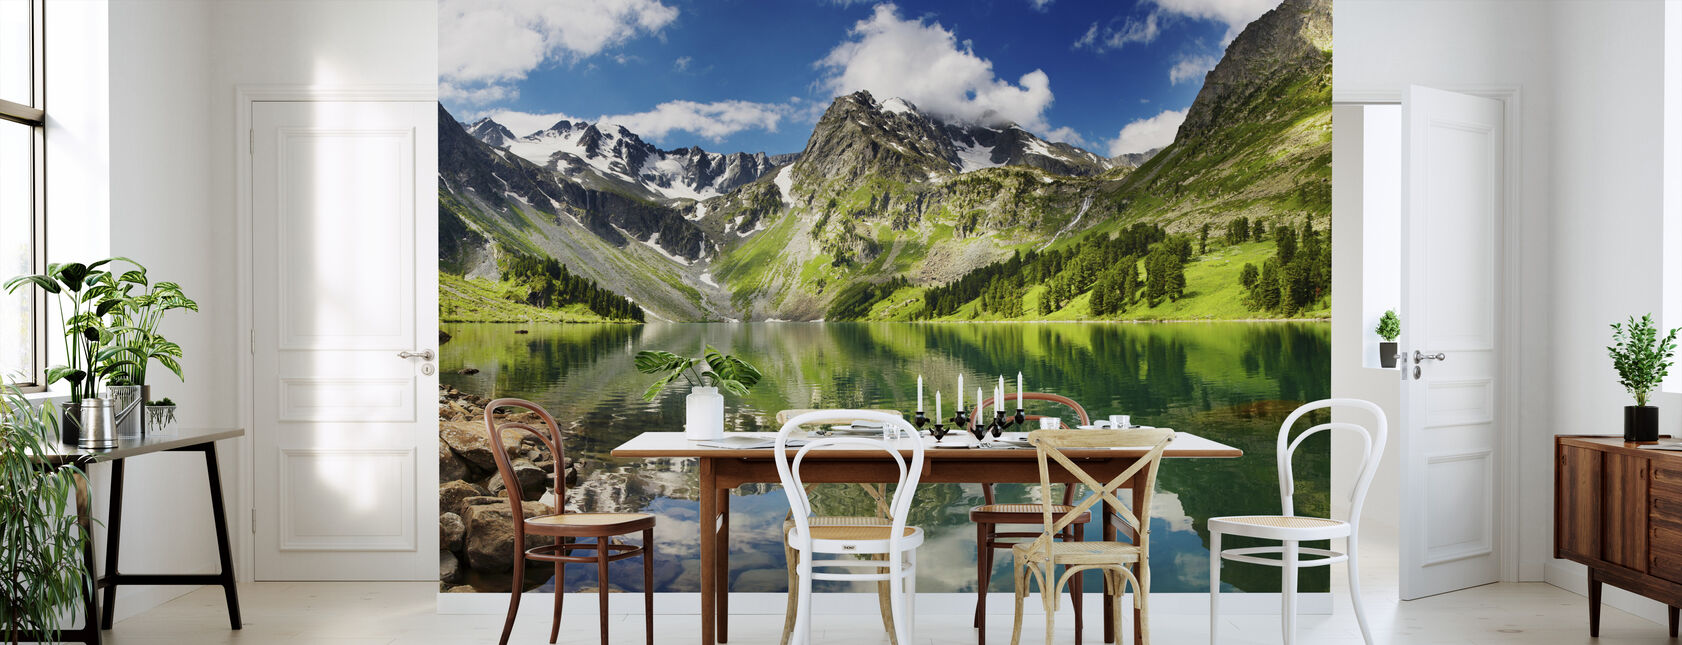 Mountain Lake - Wallpaper - Kitchen